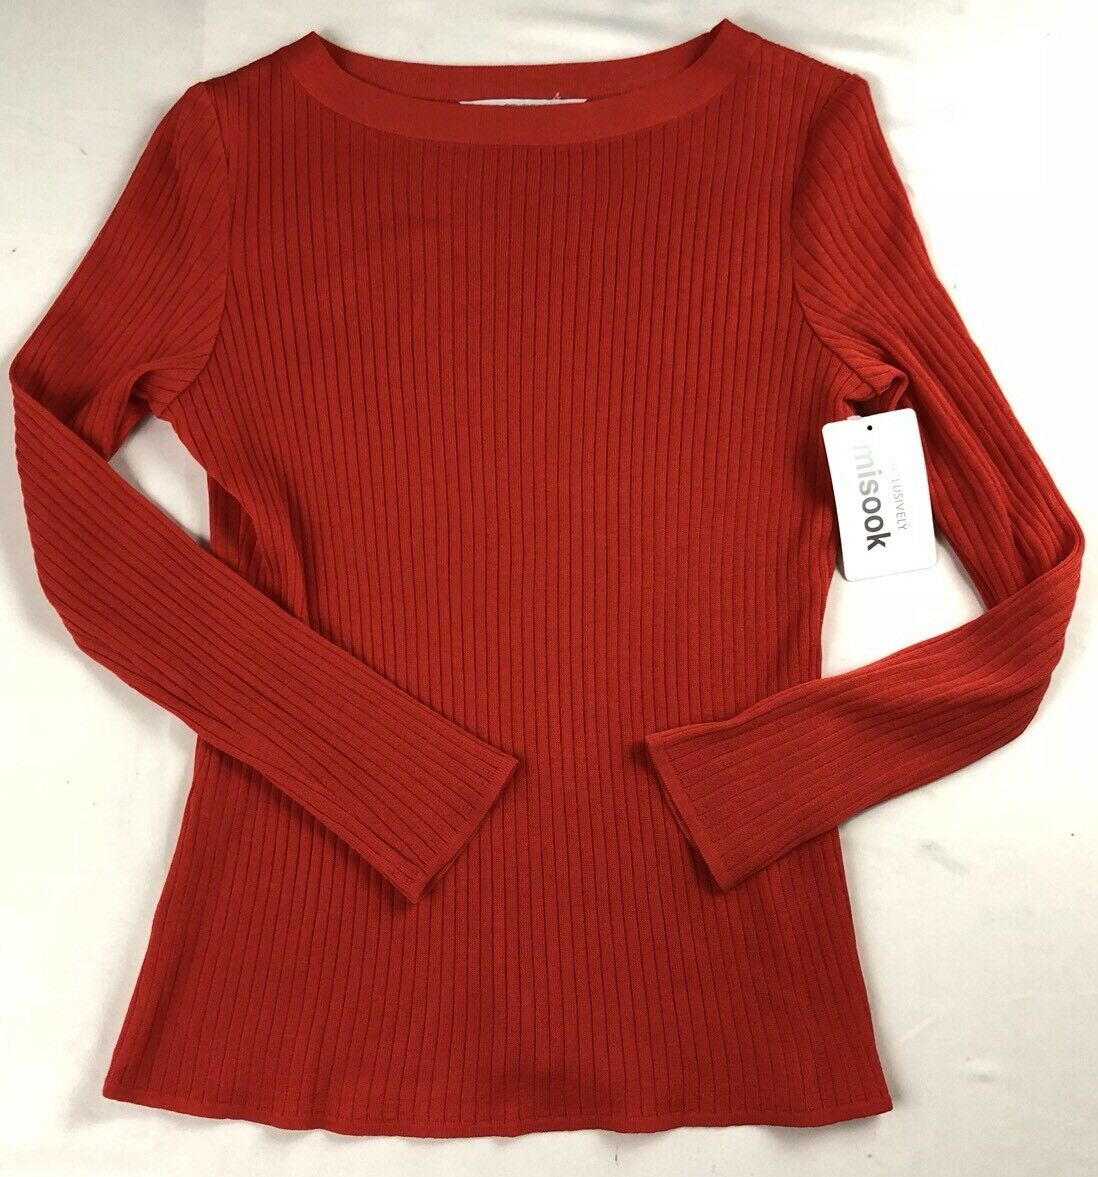 NEW NWT EXCLUSIVELY MISOOK PETITE Ribbed Sweater orange L S MEDIUM M CJ